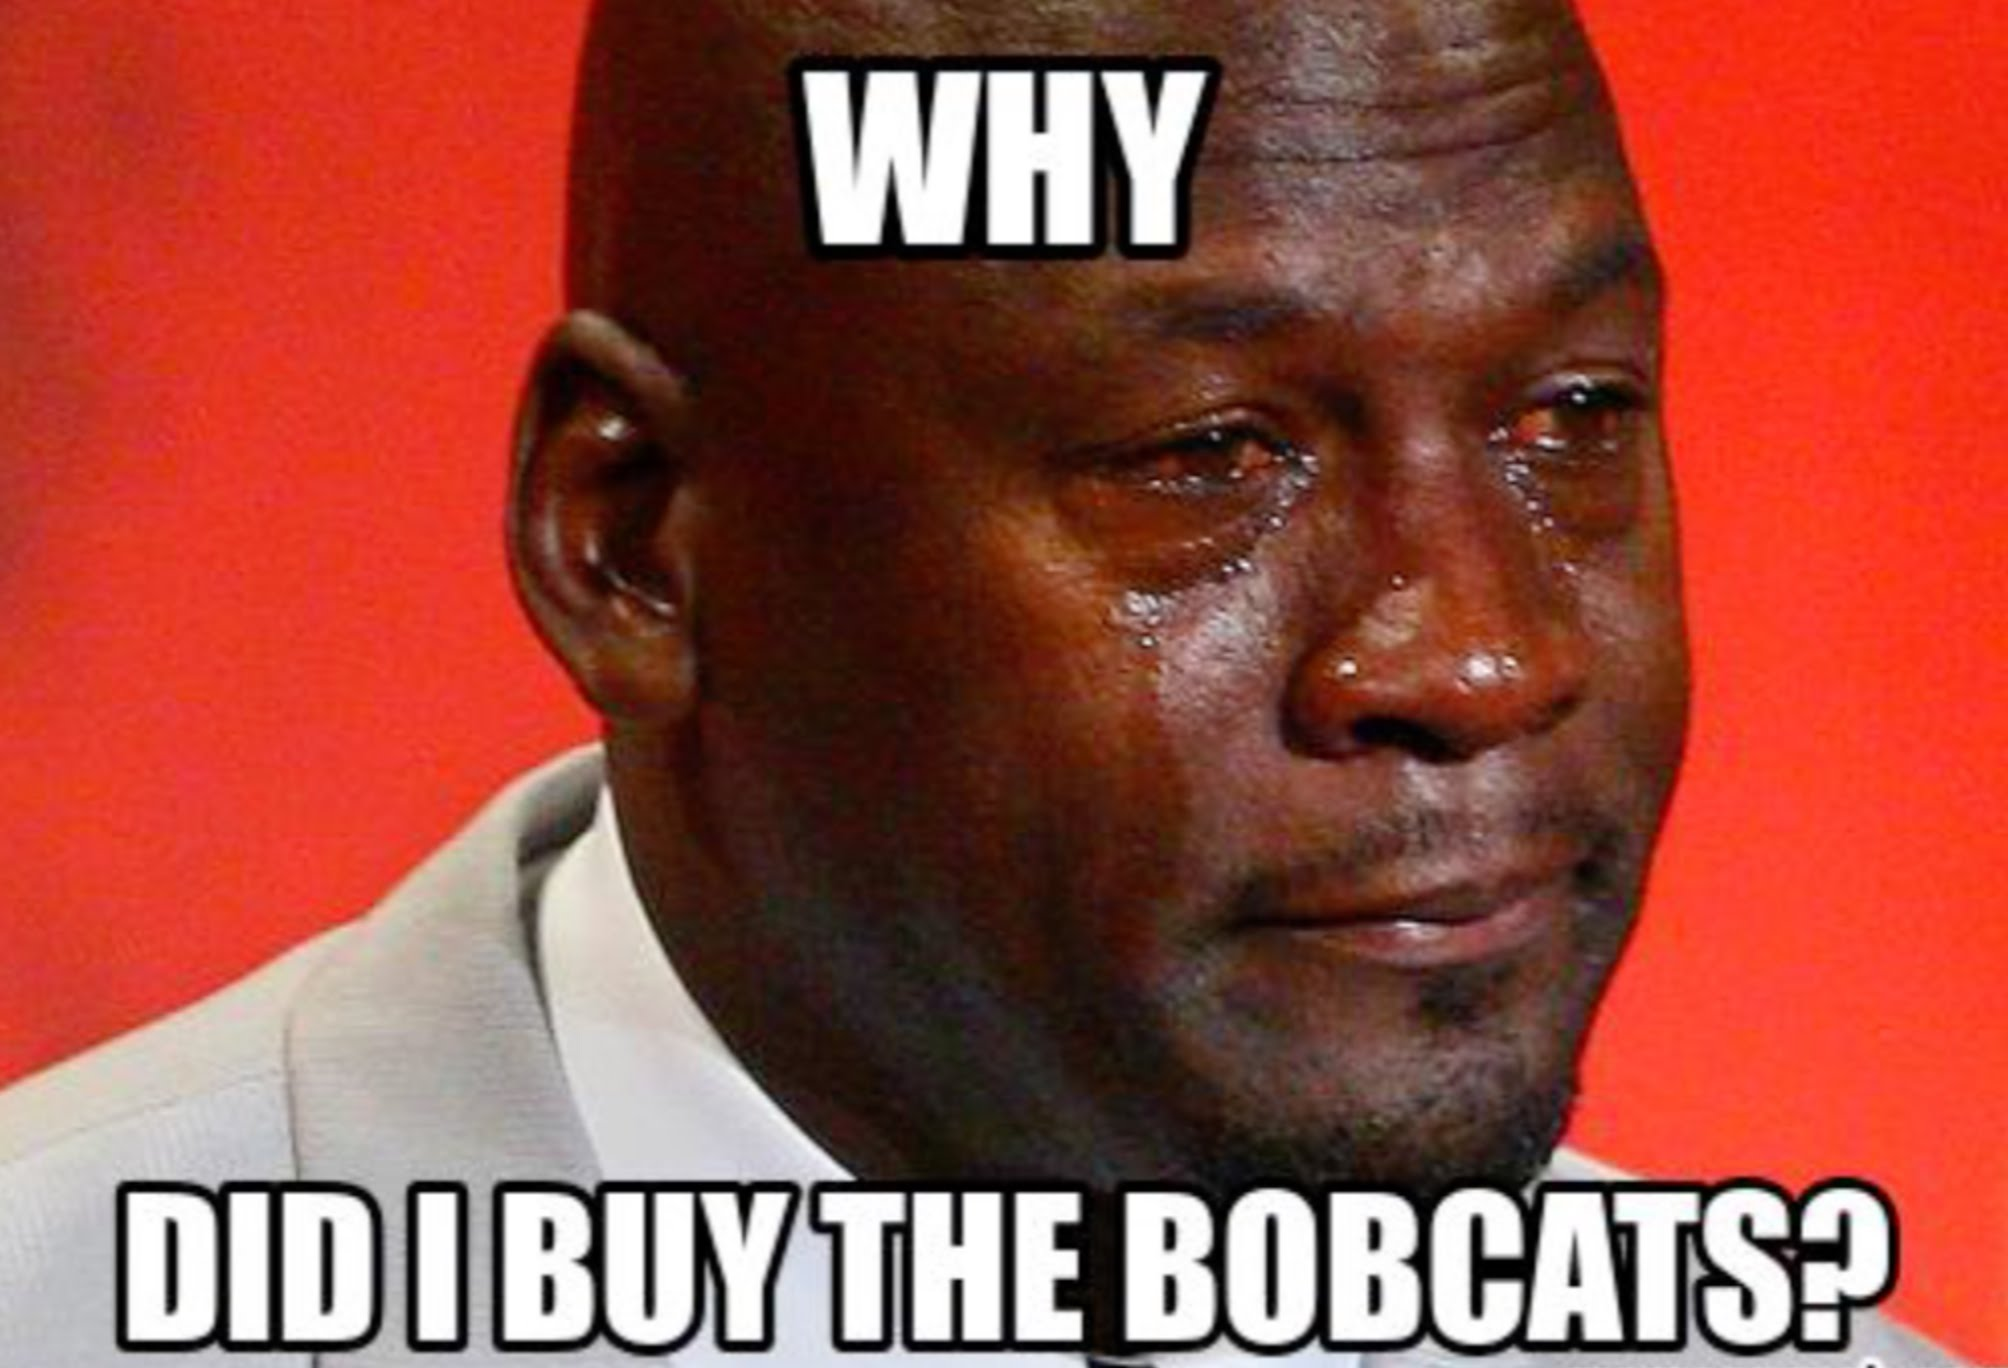 WATCH: The Crazy Origin Story of the Jordan Crying Meme and Why the Internet Won't Let It Go